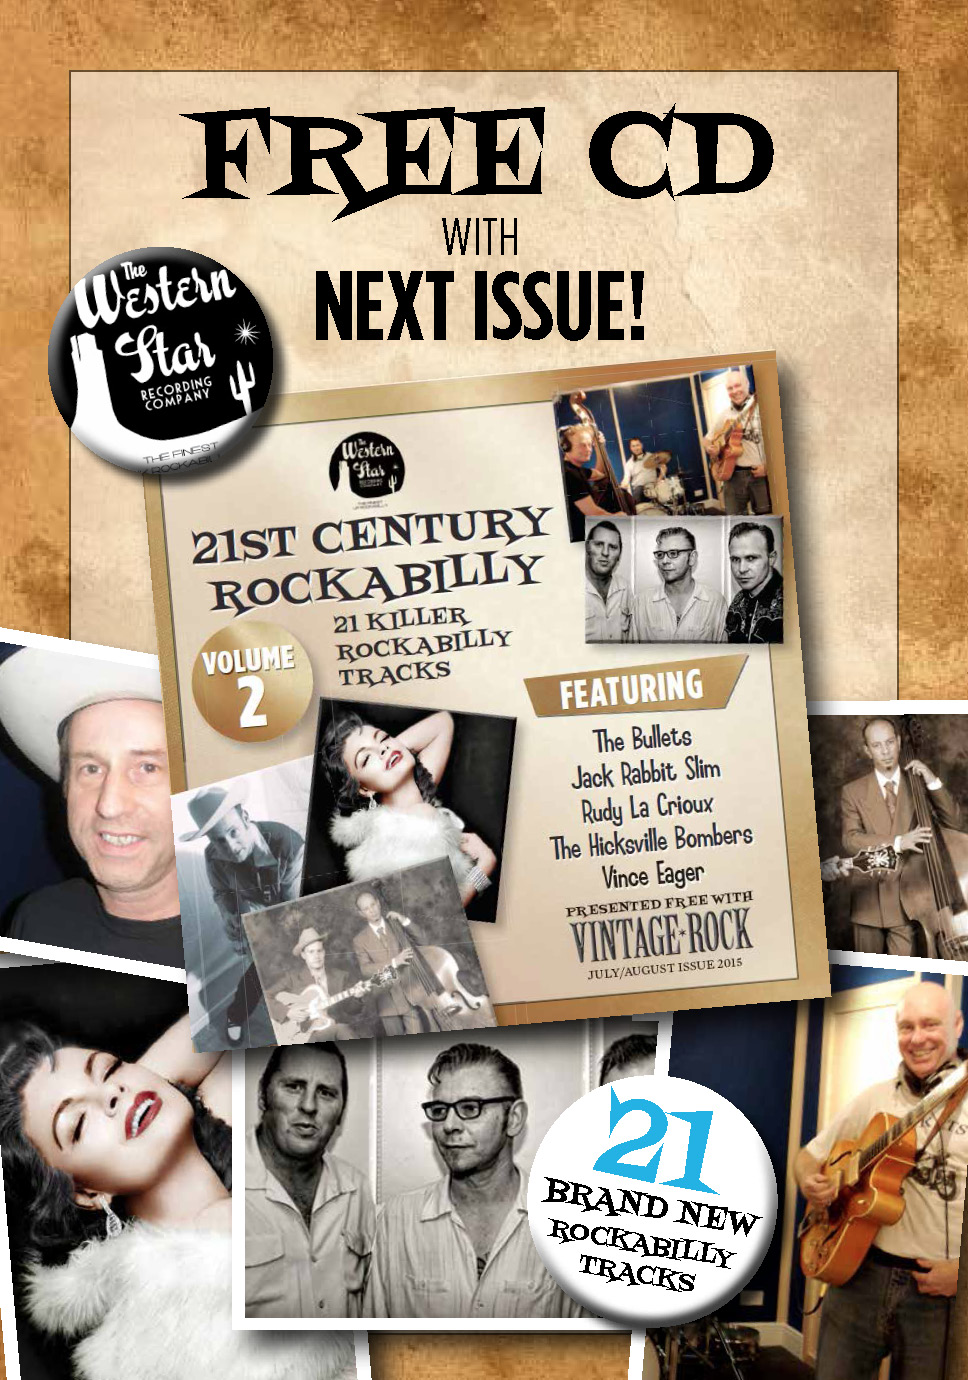 Enjoy a FREE Rockabilly CD with Vintage Rock Issue 18